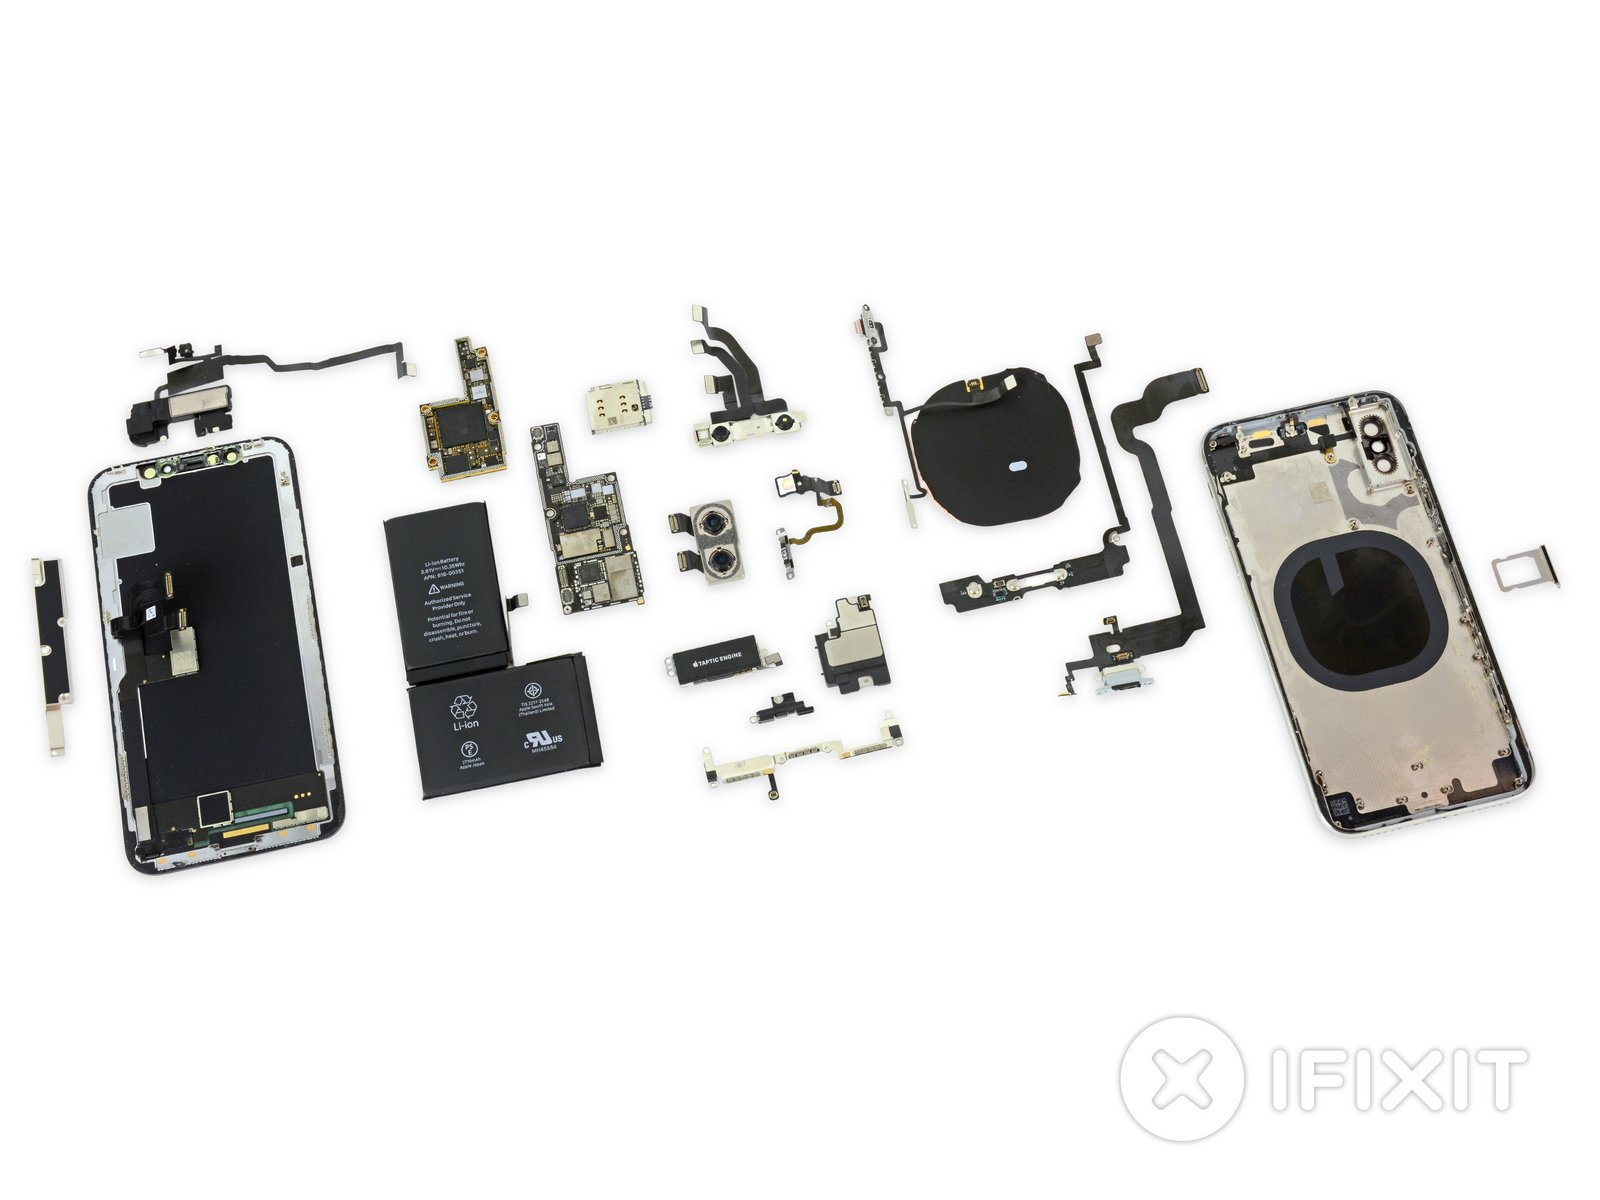 Iphone X Teardown Ifixit Computer Parts Diagram For Kids Users Will Label The